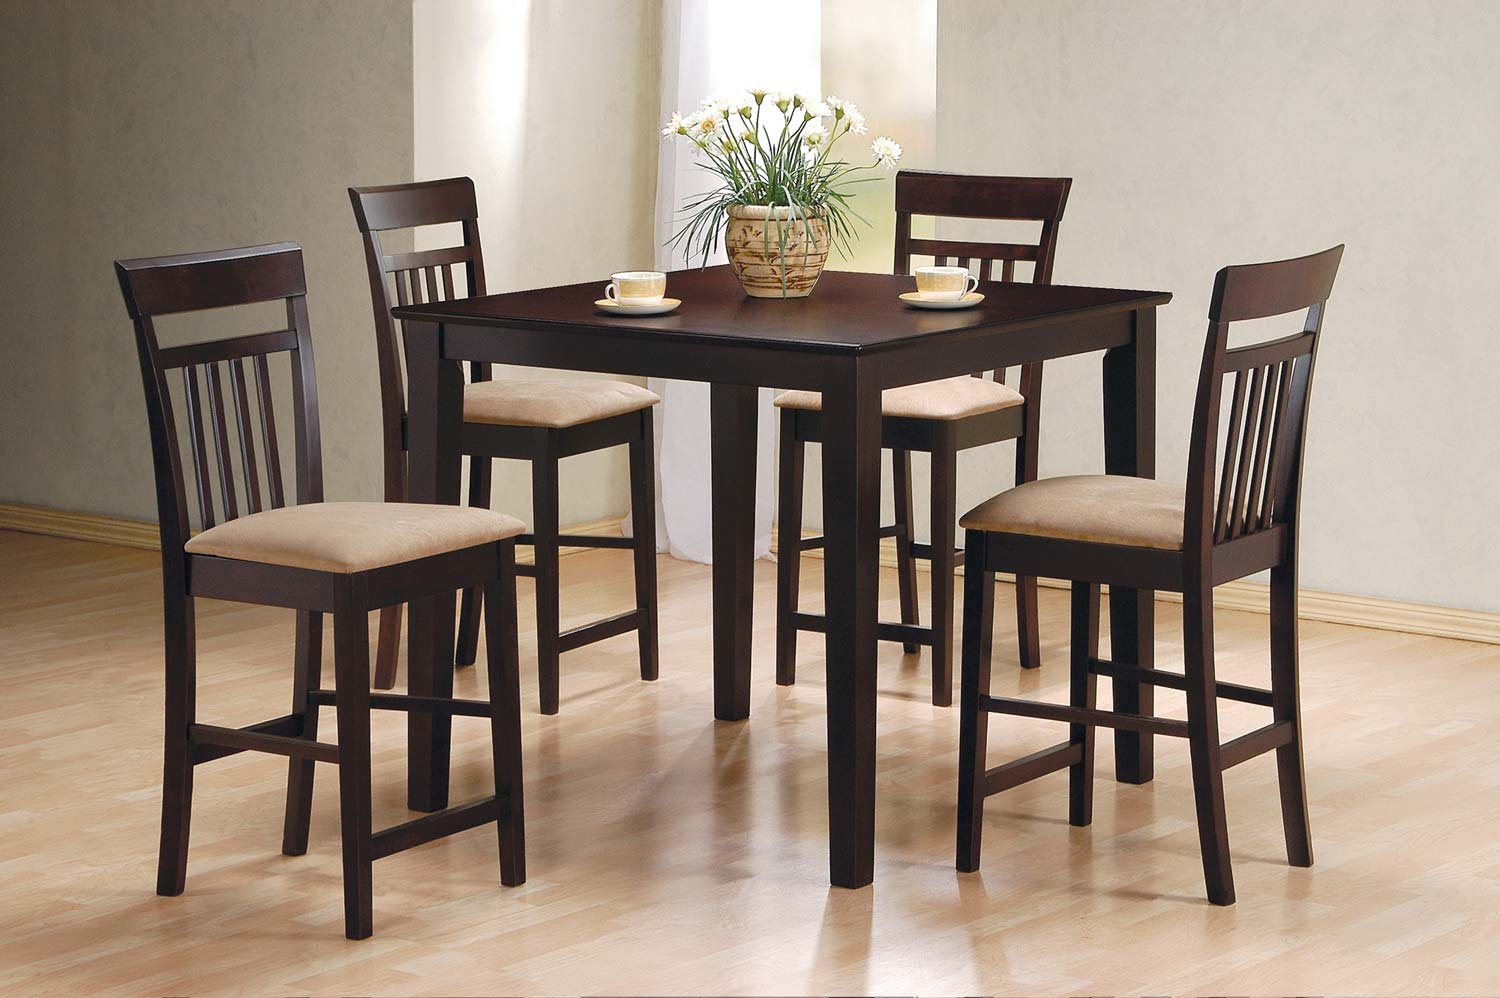 Coaster 150041 5PC Counter Height Dining Set - Cappuccino